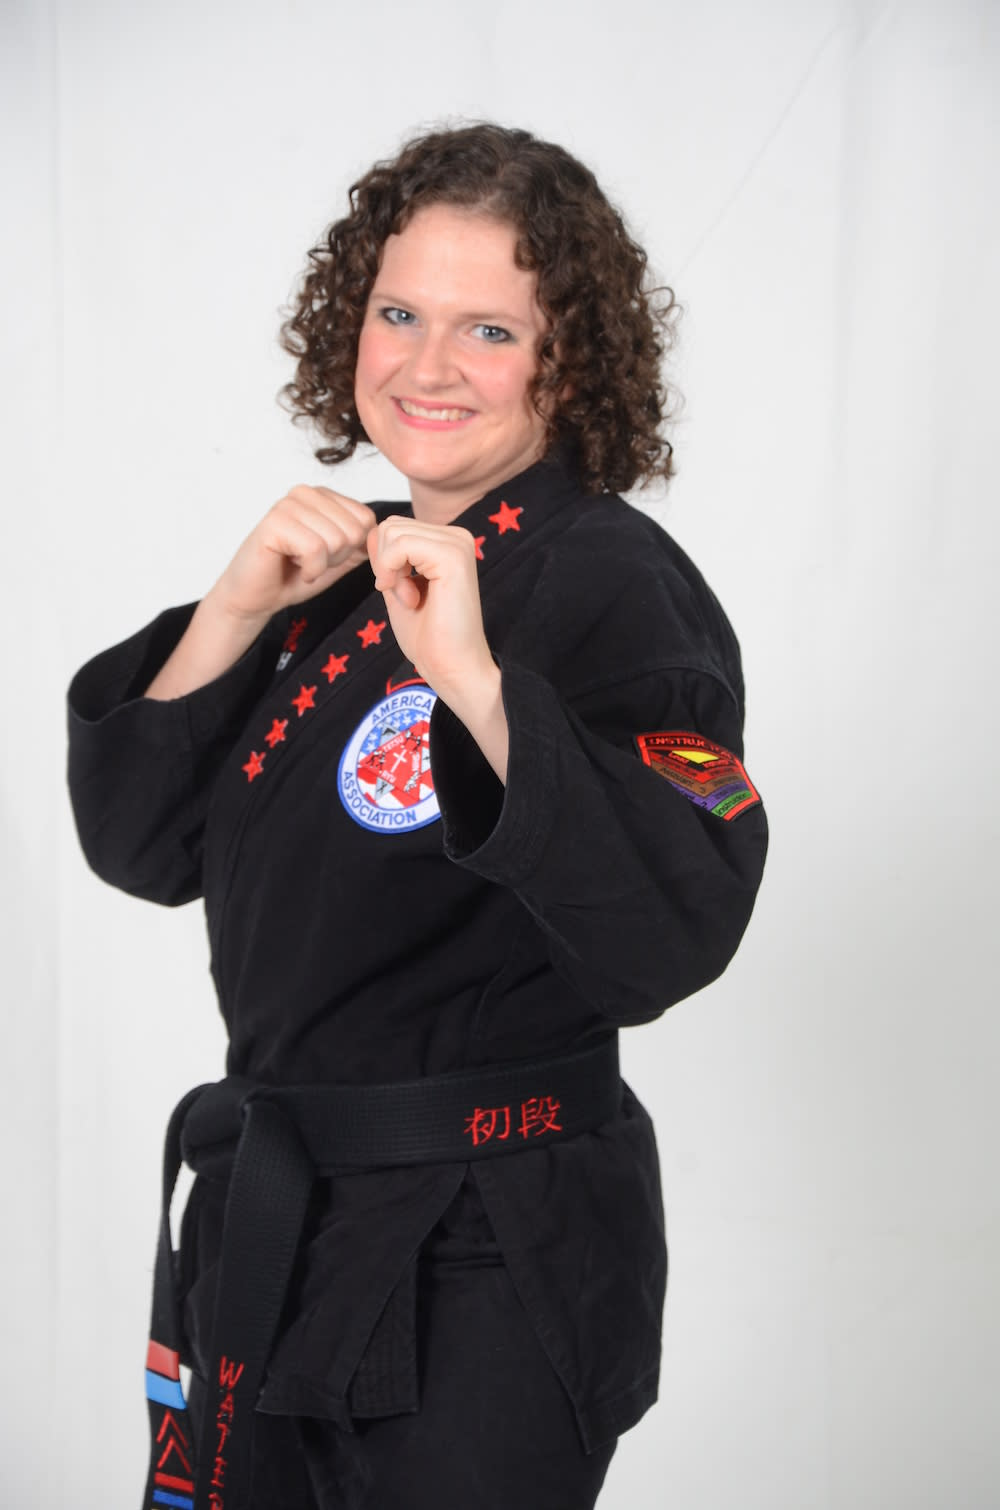 Leah Waters in Martinez - Seigler's Karate Center